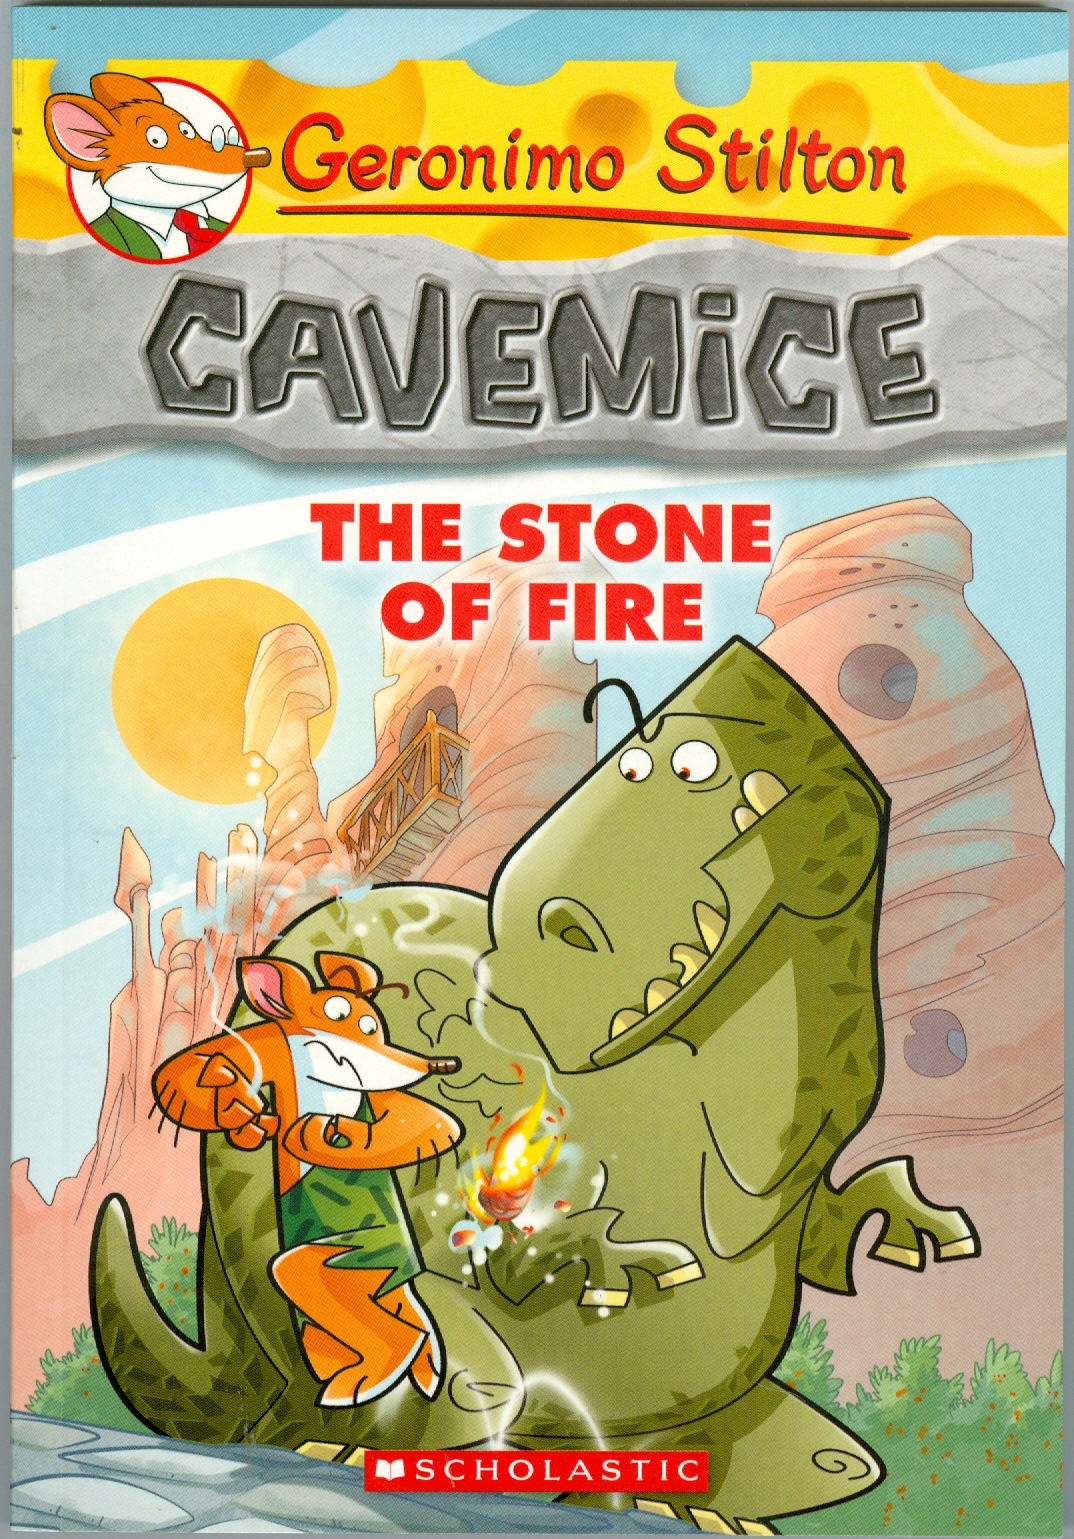 Cavemice #1: The Stone of the Fire